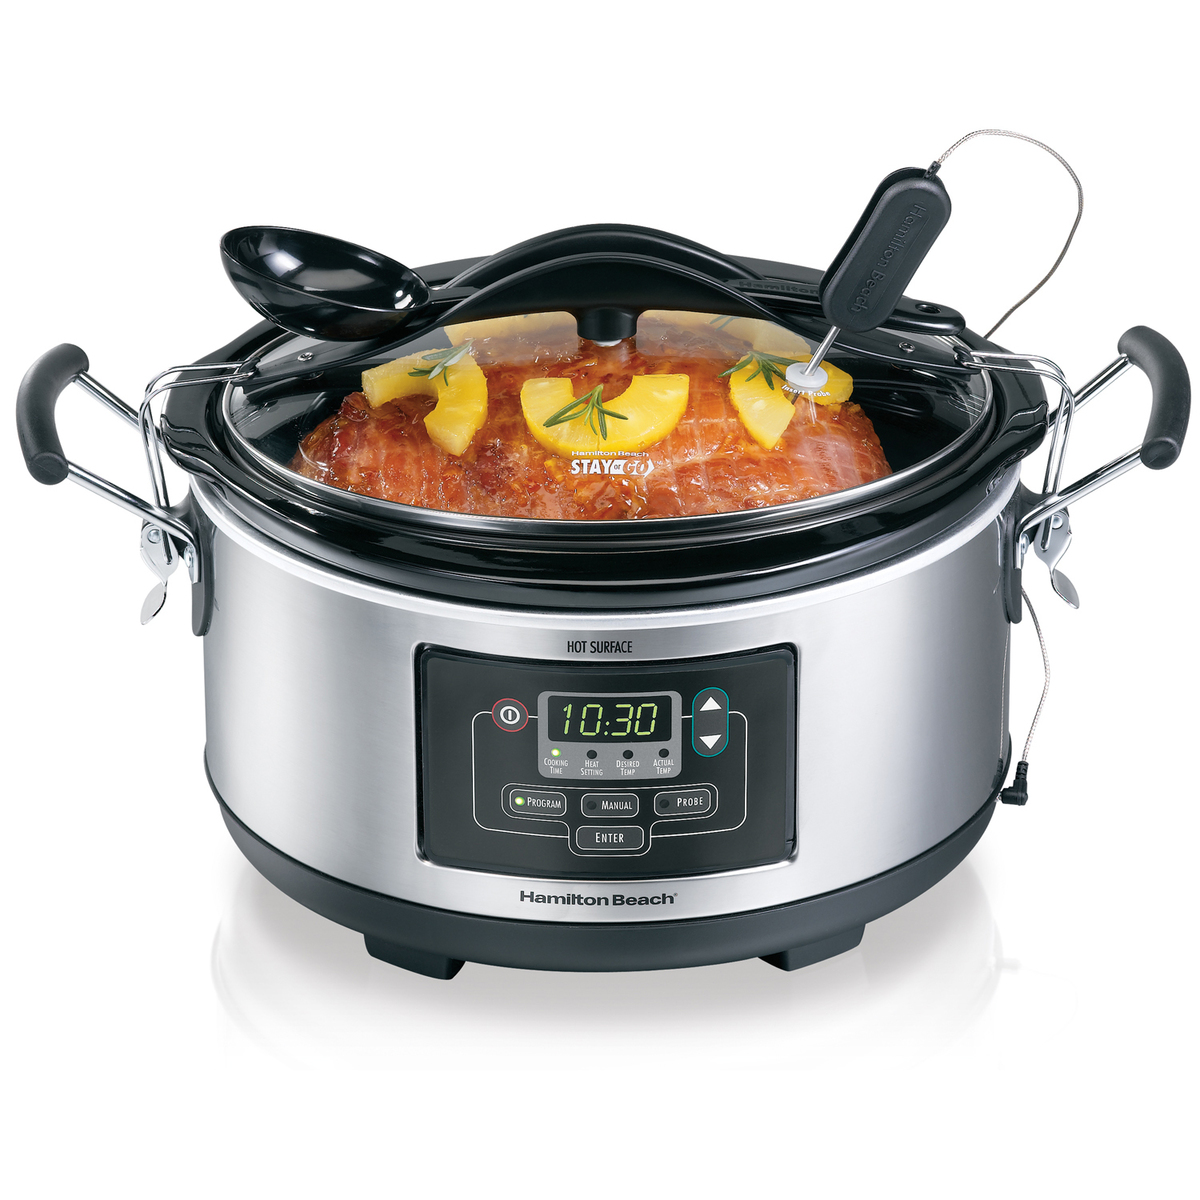 Deluxe Set & Forget® 6 Quart Slow Cooker (33862)